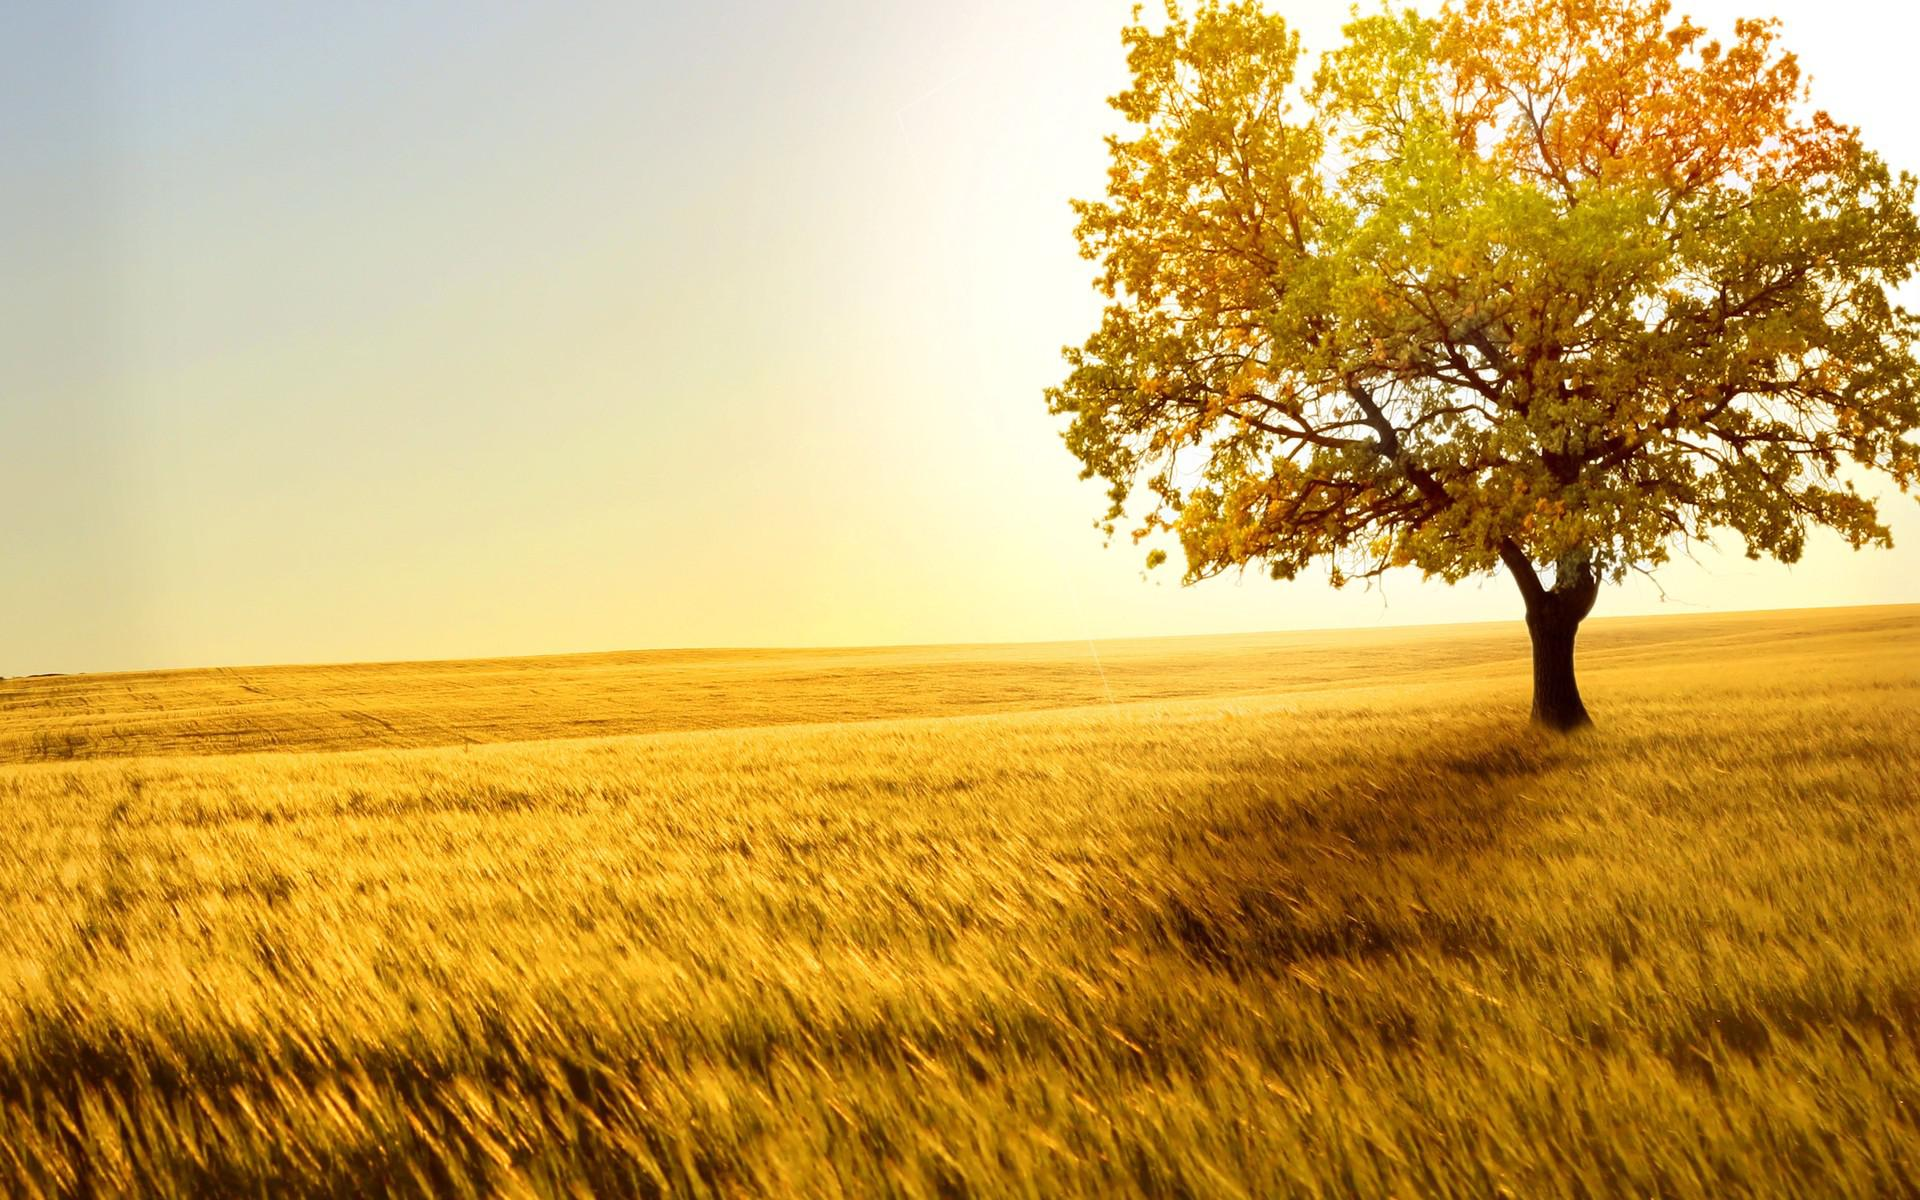 Moving Fall Wallpapers For Windows 10 Hd Fields Grass Trees Autumn Fall Sunlight Leaves